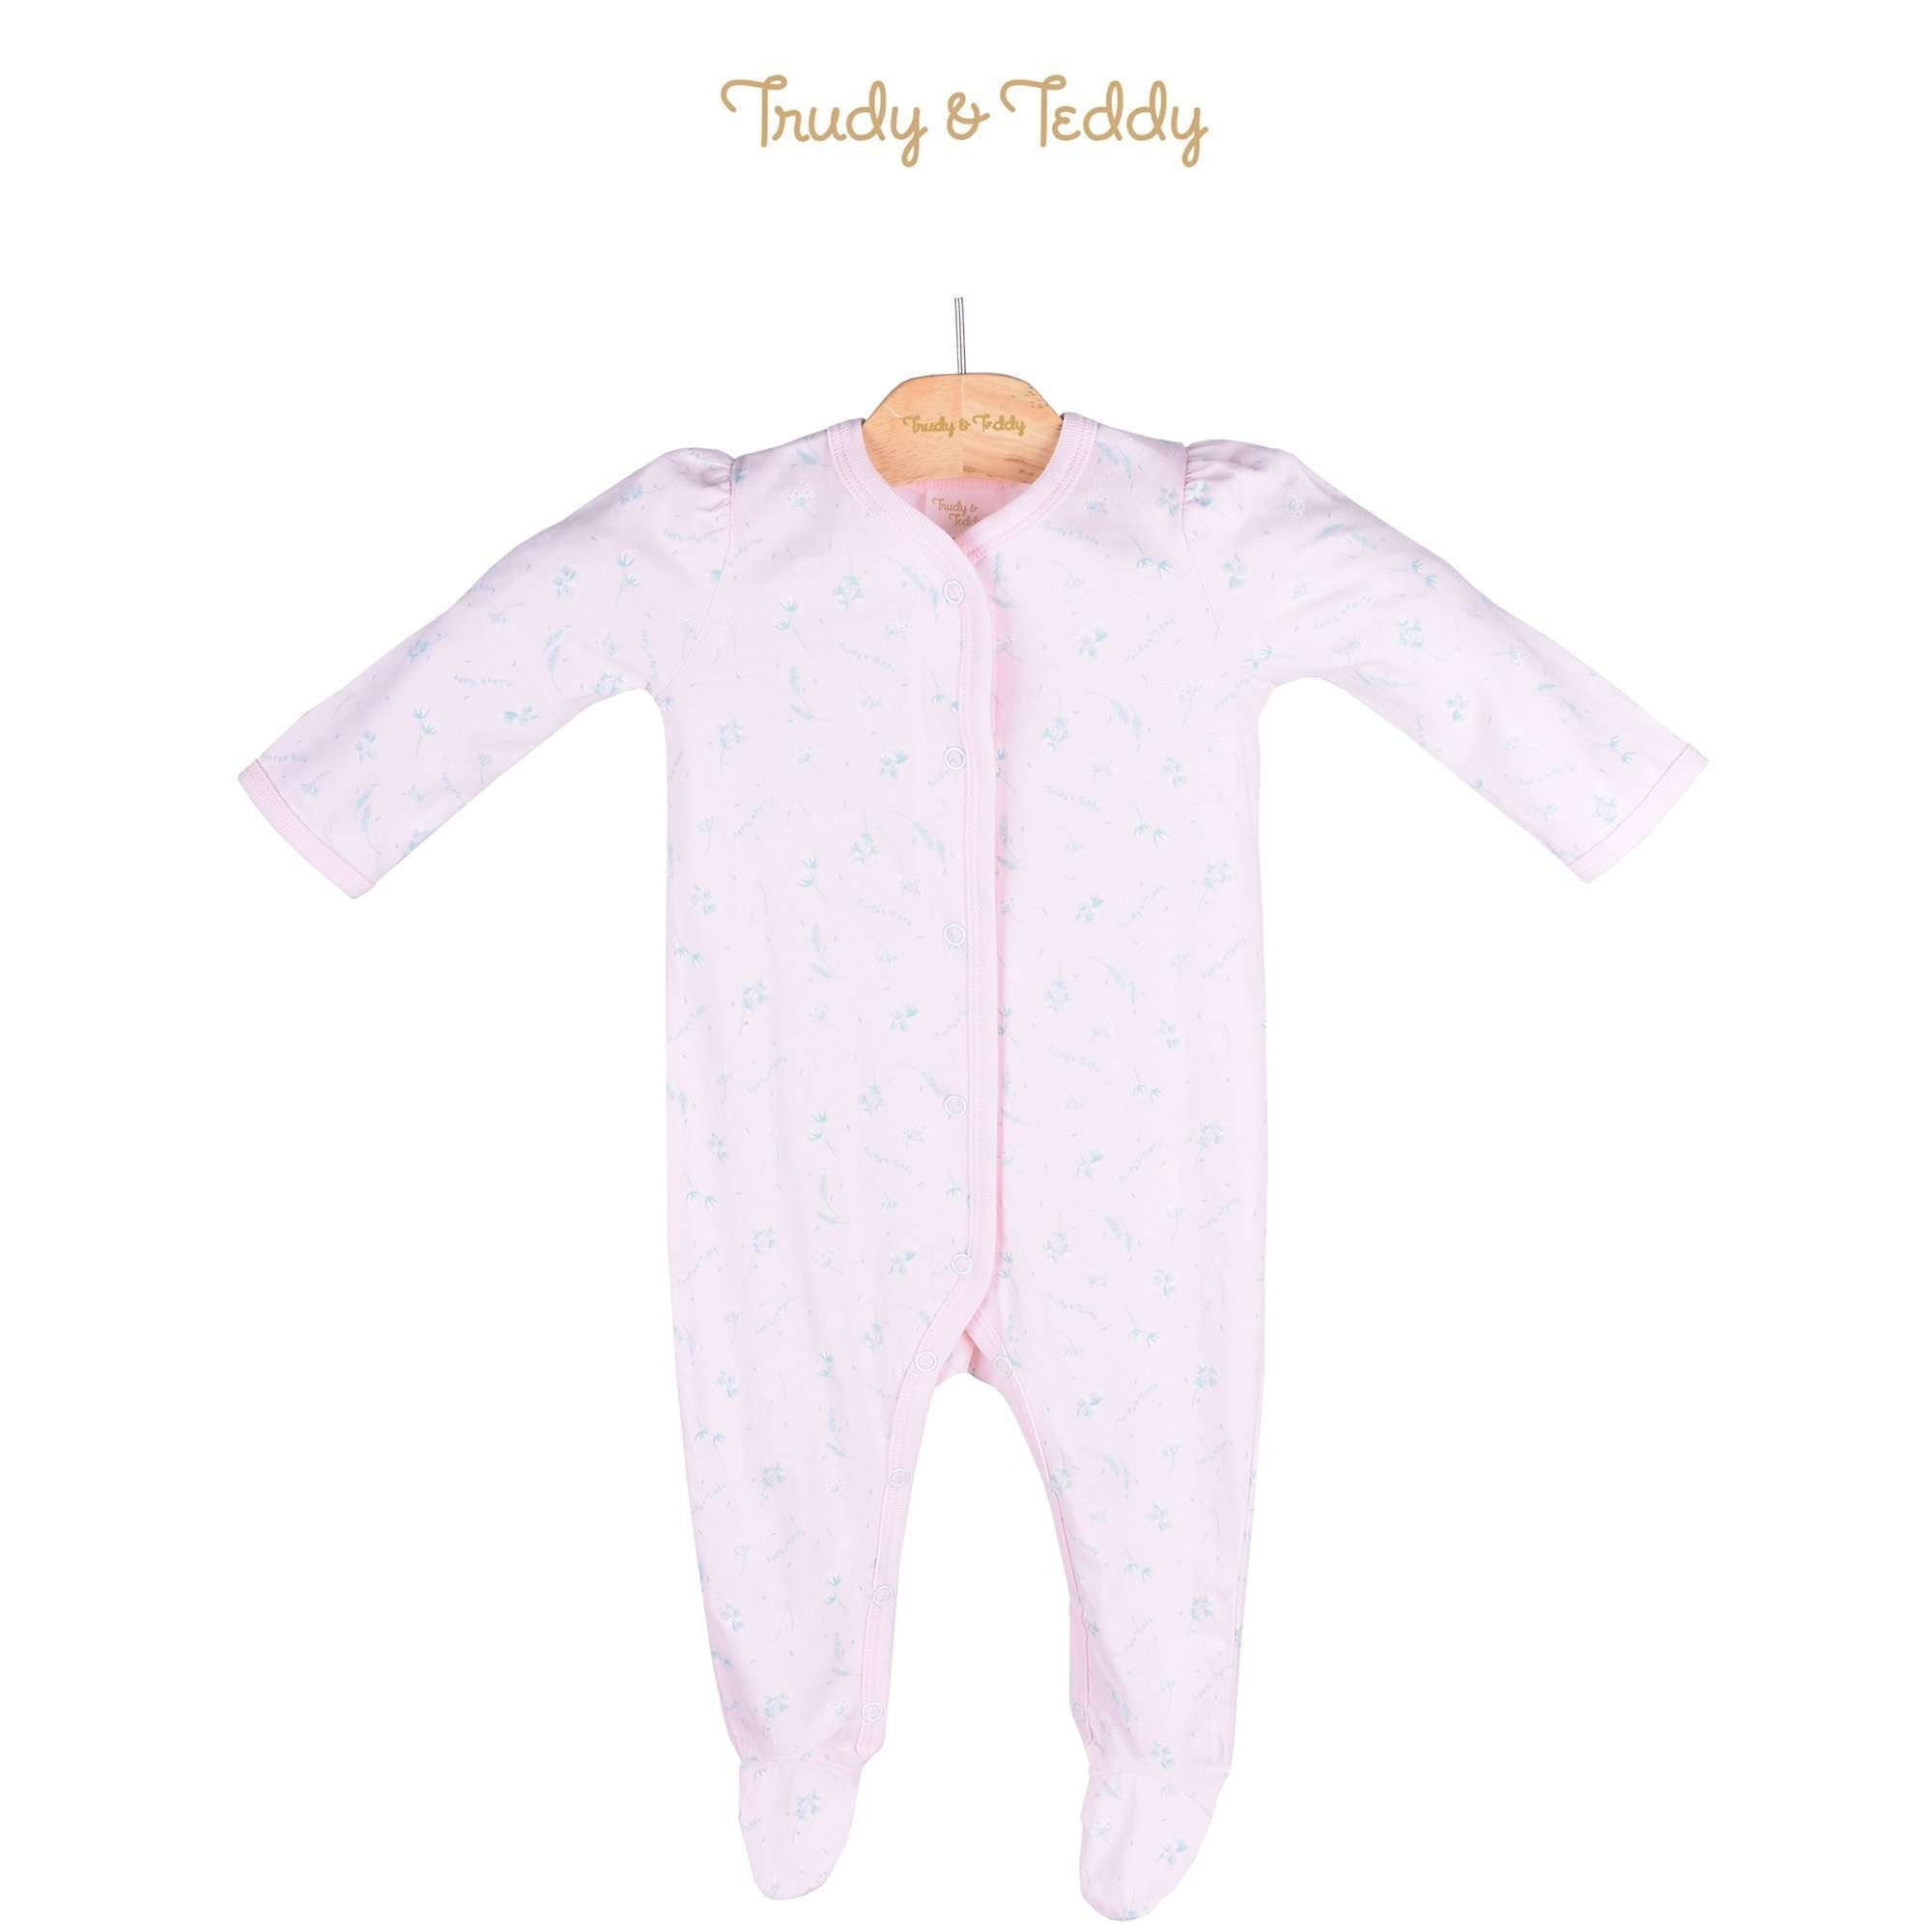 Trudy & Teddy Baby Girl Long Sleeve Long Romper 820032-362 : Buy Trudy & Teddy online at CMG.MY